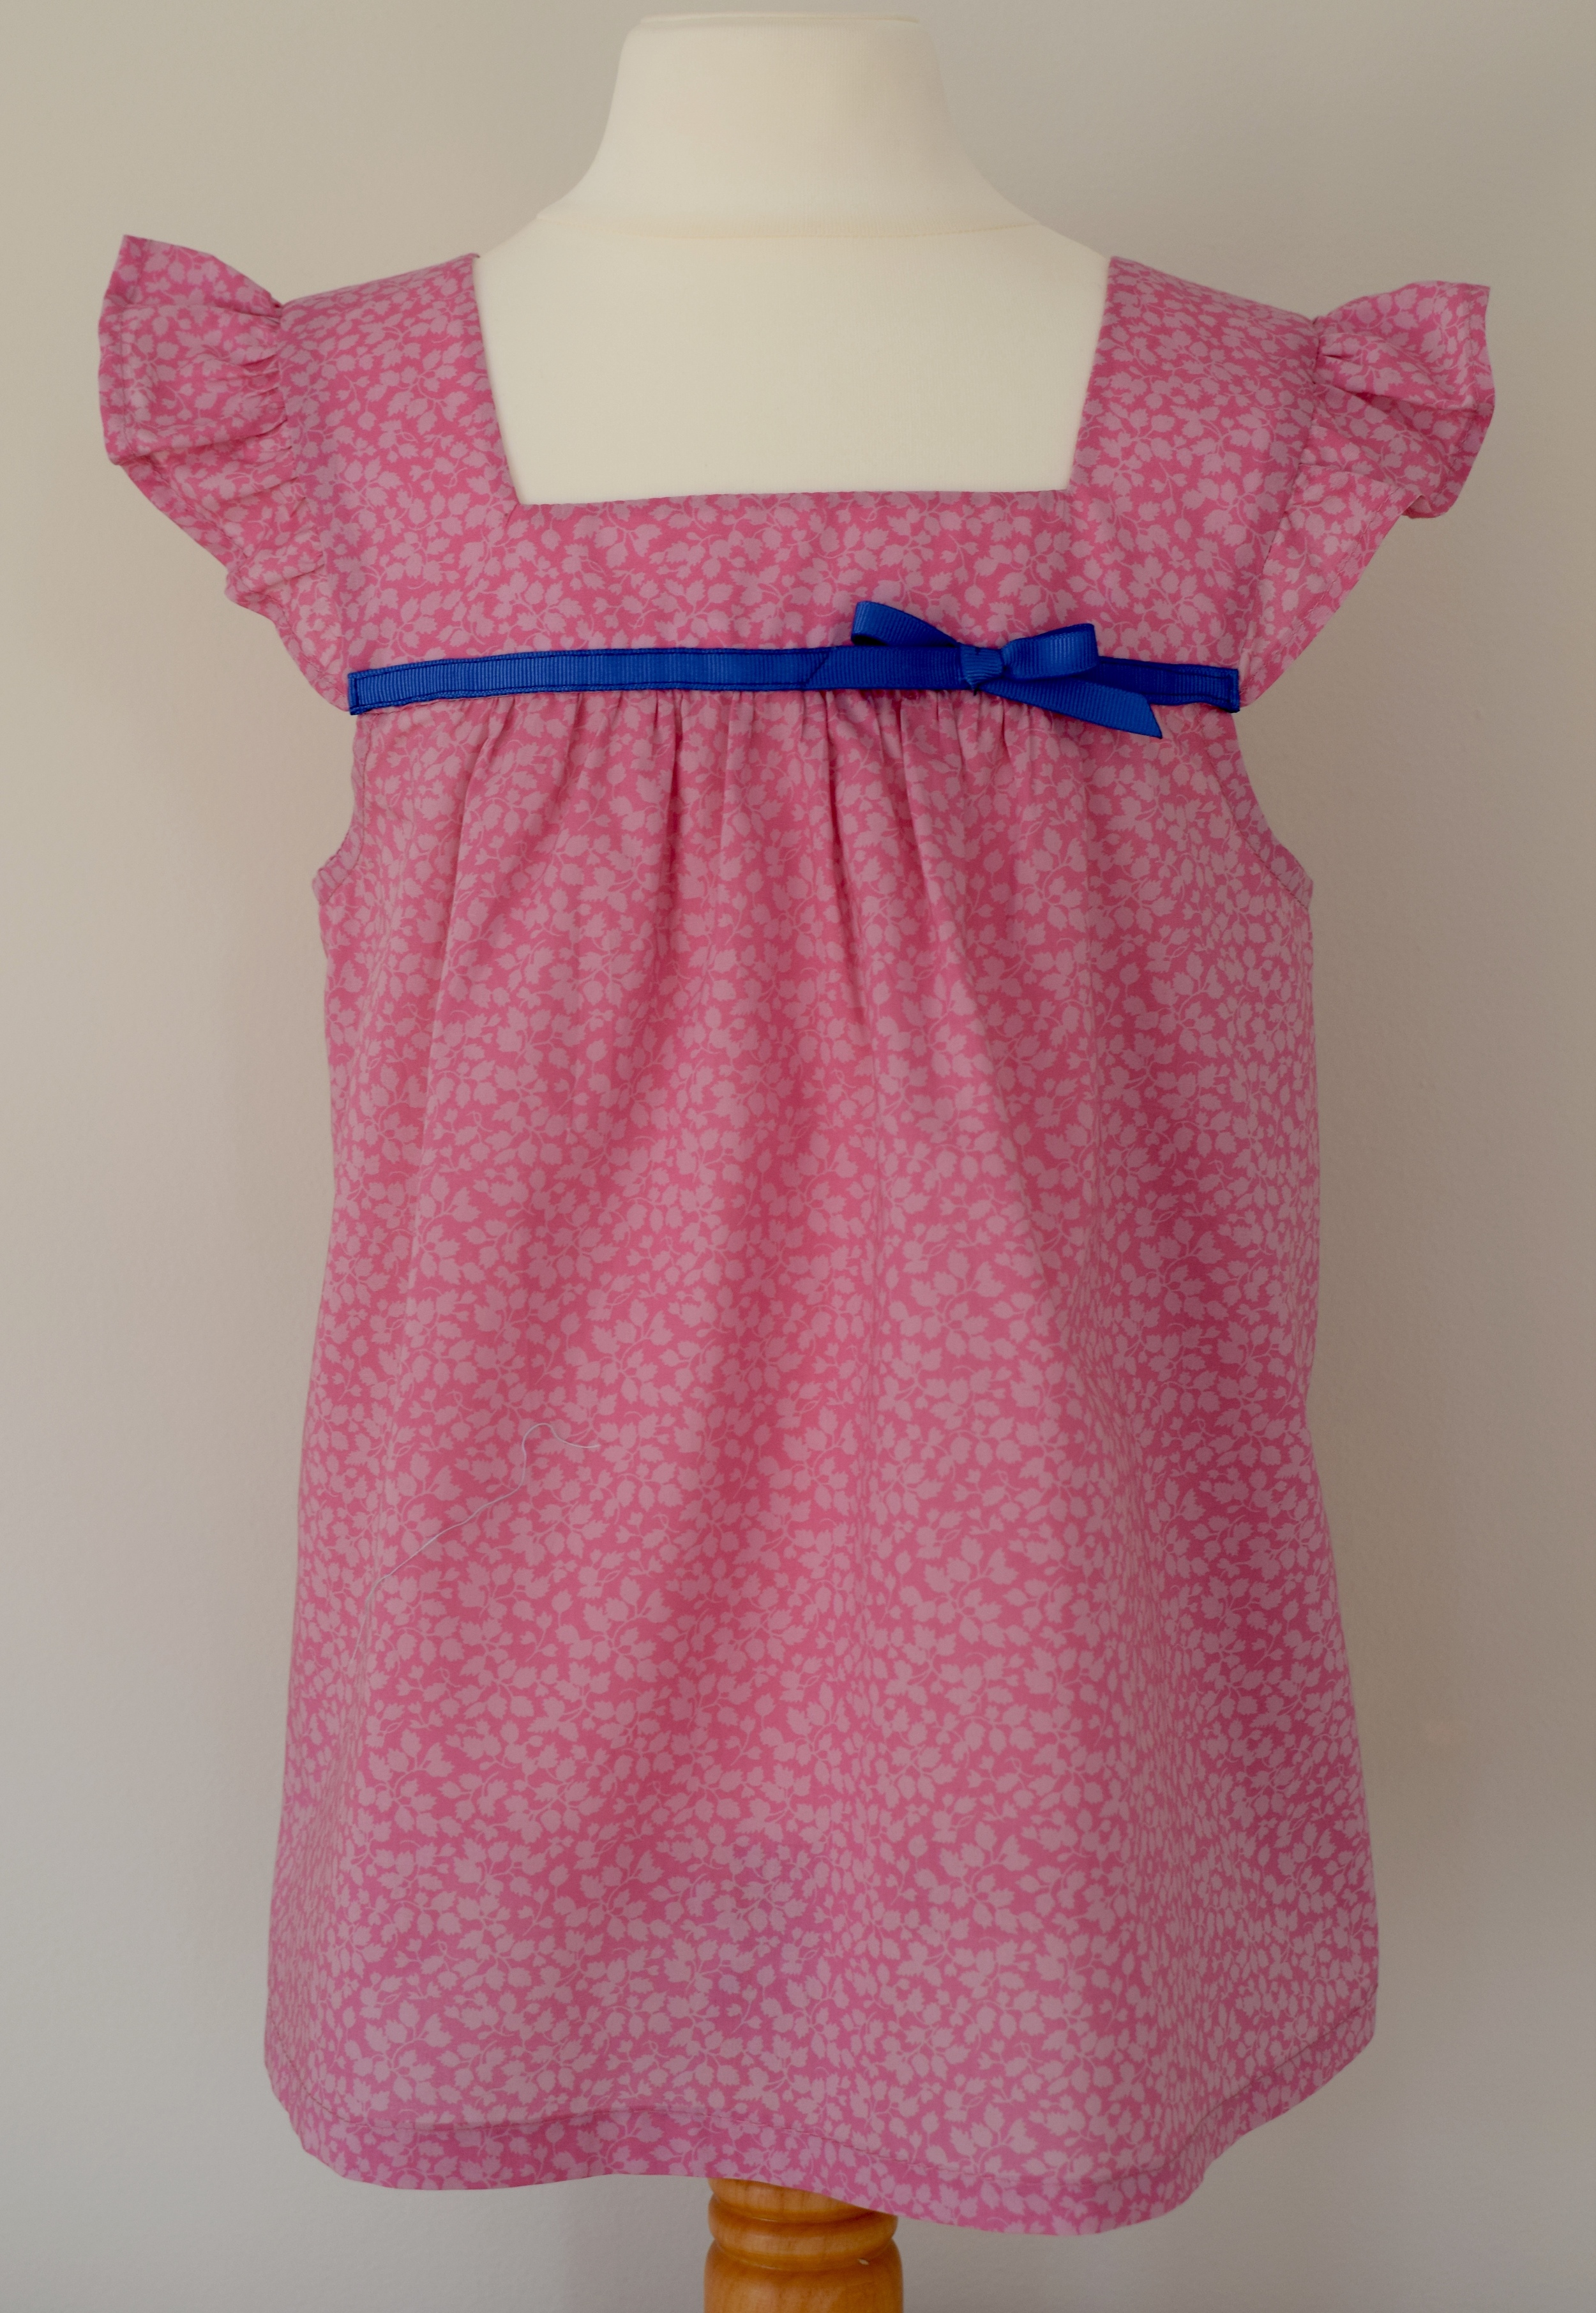 Liberty Glenjade pink   Liberty print, ruffle sleeves, square neck top with a fixed contrasting blue grosgrain ribbon.  Available in size large  £35